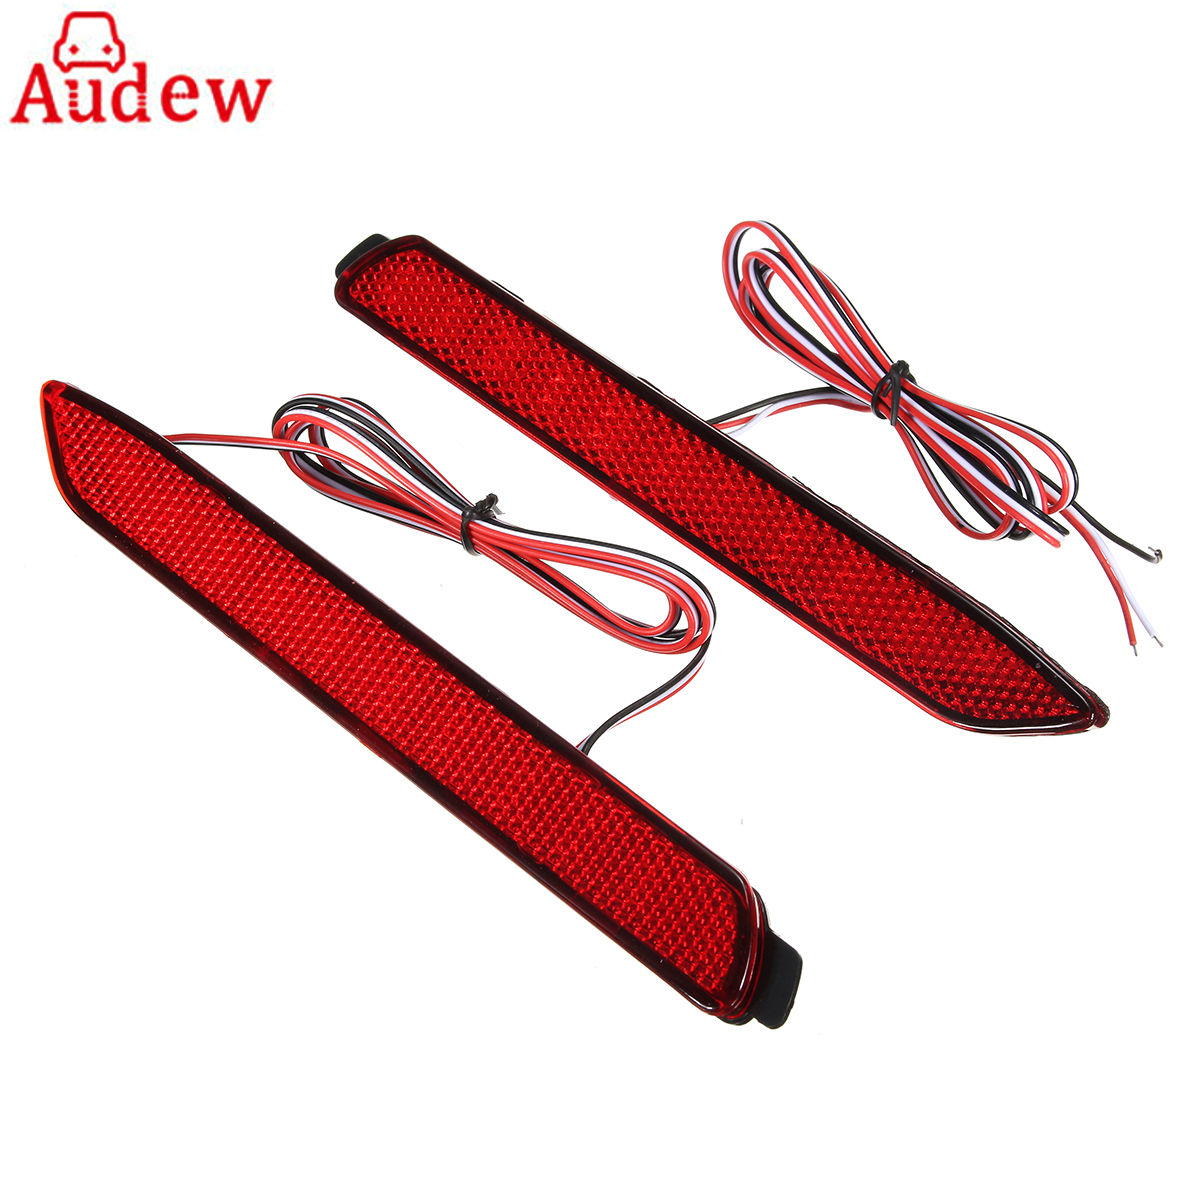 где купить Pair Car LED Rear Bumper Reflector Brake Lights Red Lens Red Lamp for Lexus IS-F GX470 RX300 for Toyota/Camry/Sienna/Venza/Reiz дешево